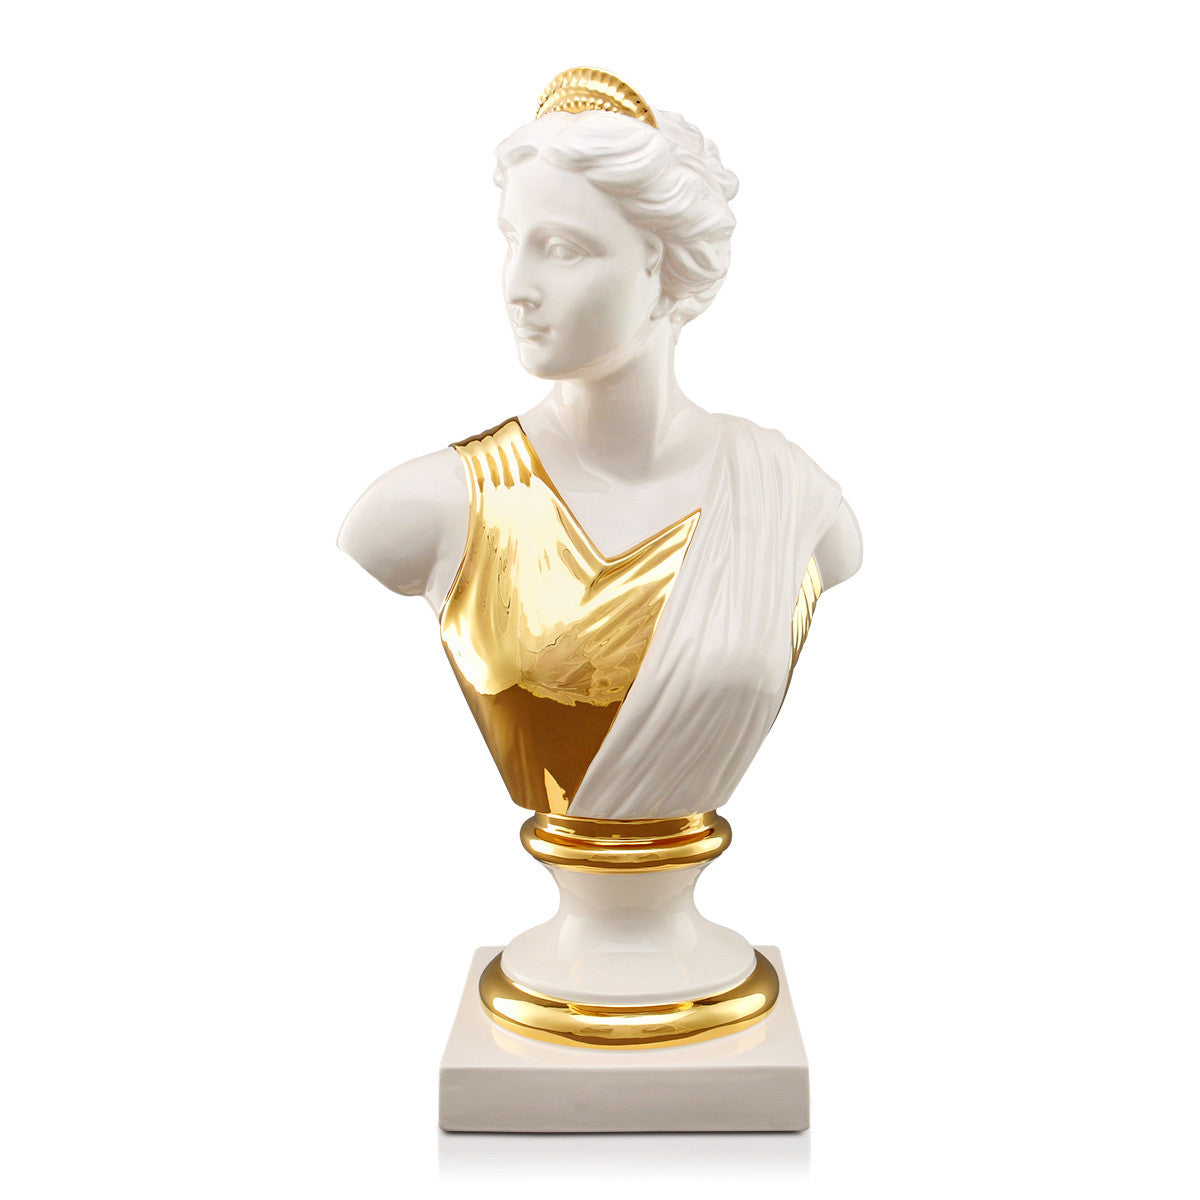 Venus ceramic sculpture decorative objects, home interiors, italian figurines